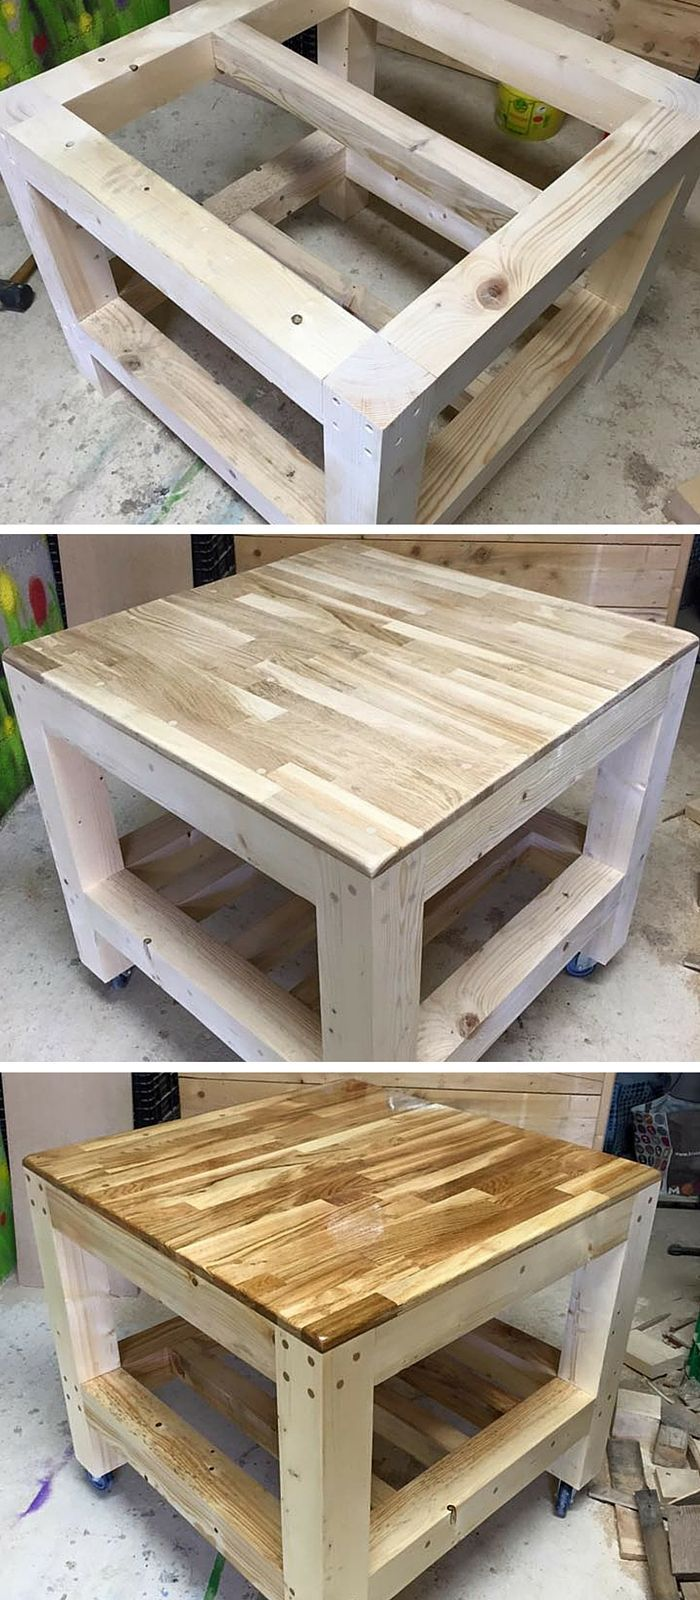 We have today this diy pallet square shape coffee table this table